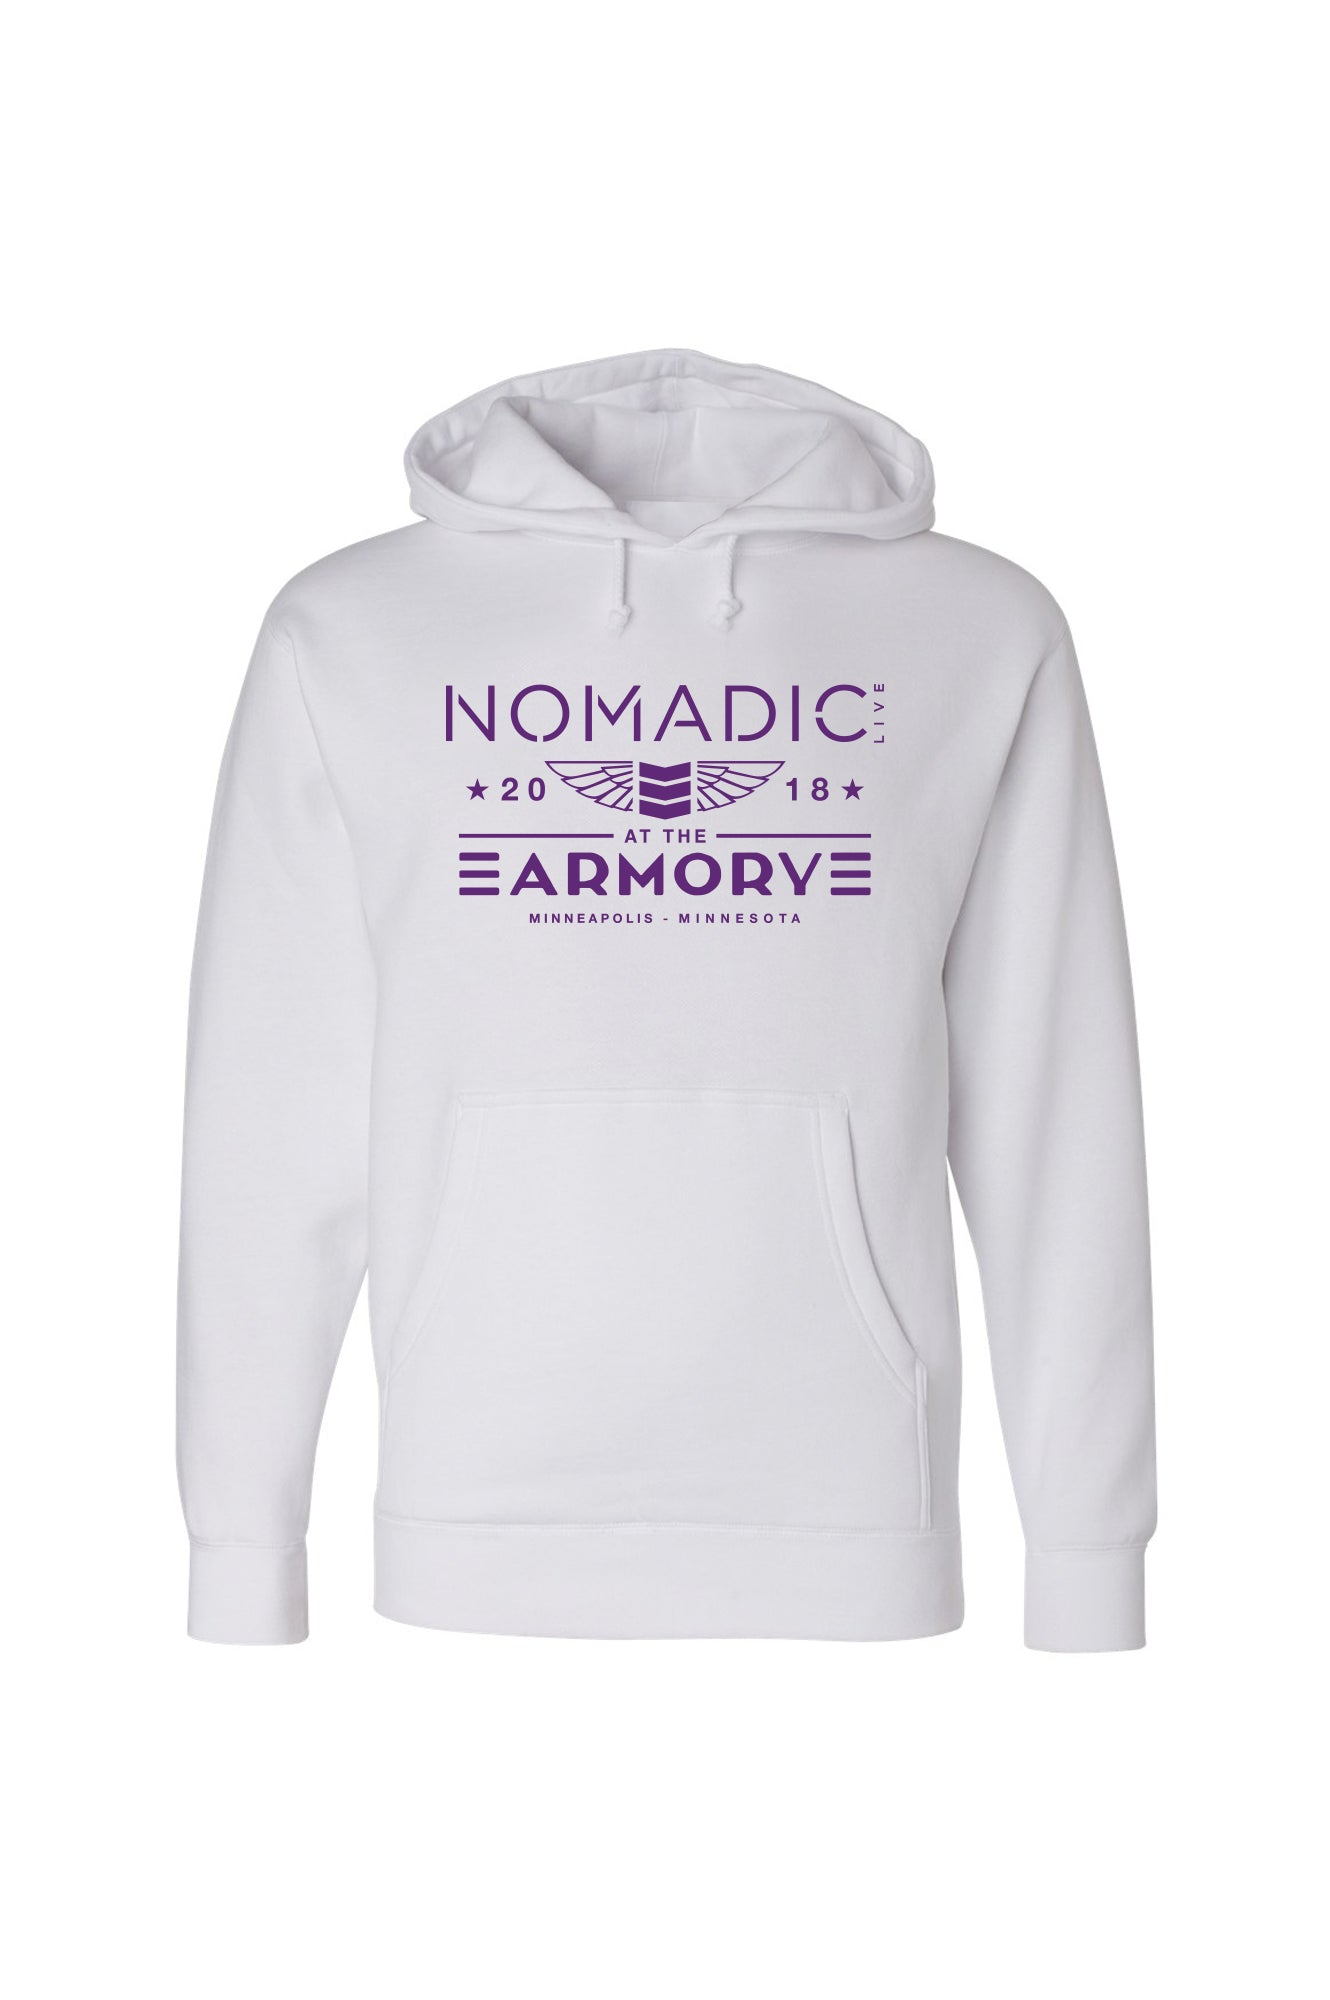 Nomadic @ The Armory Thank you Hoodie